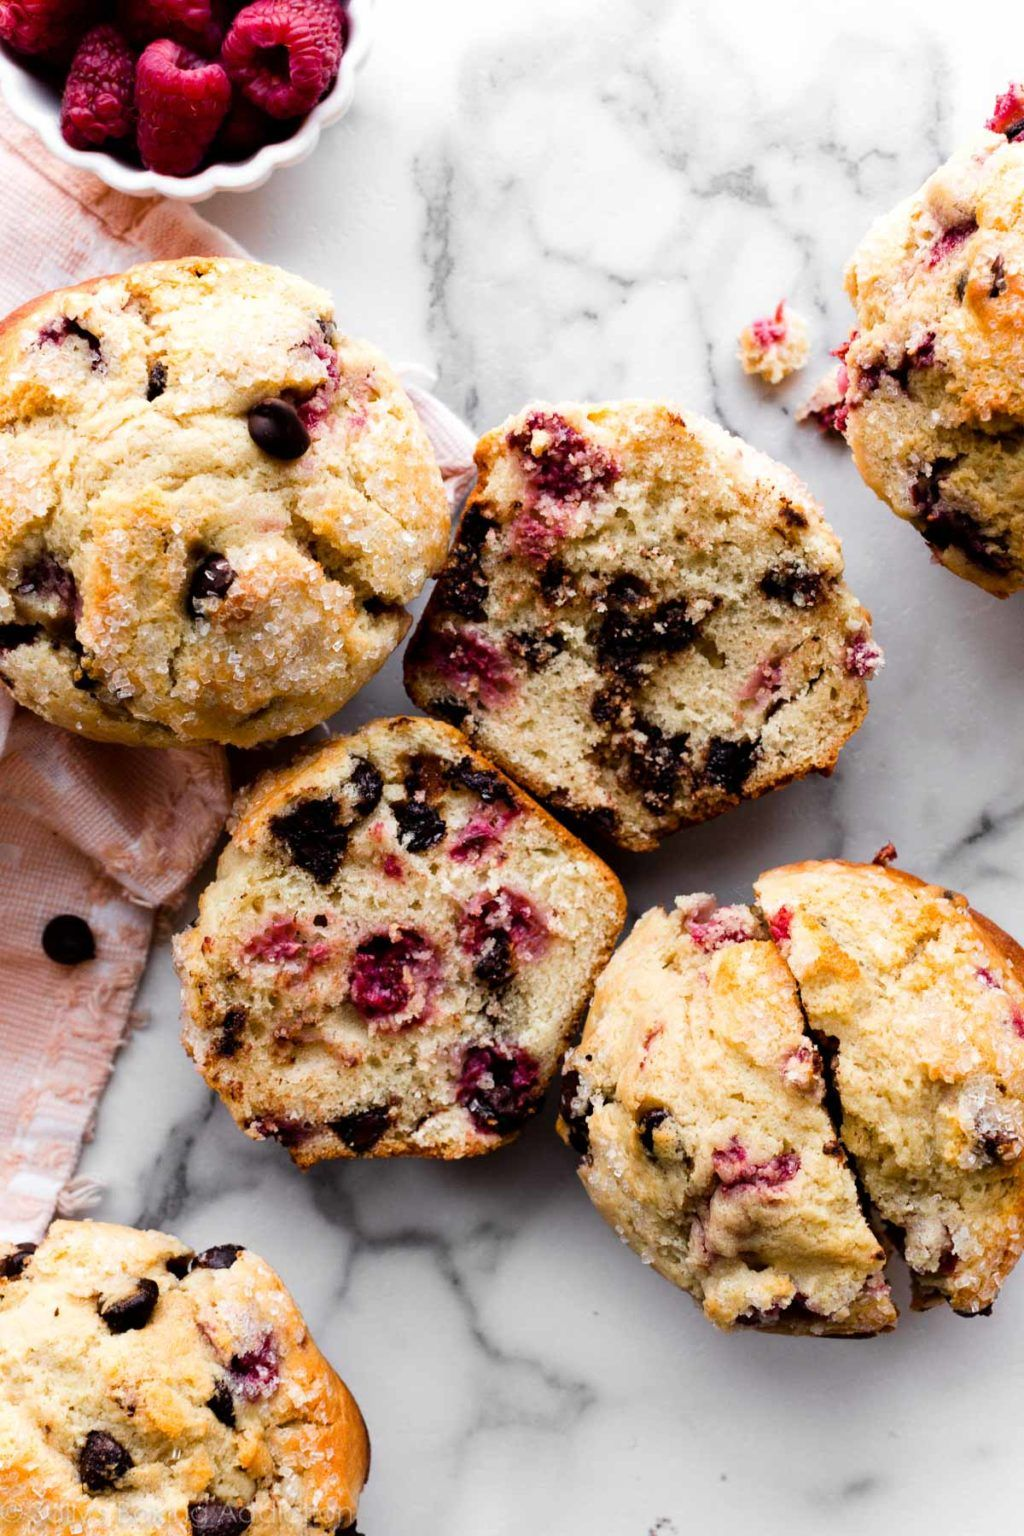 Make These Big Bakery Style Raspberry Chocolate Chip Muffins In A Jumbo Muffin In 2020 Raspberry Chocolate Chip Muffins Raspberry Chocolate Chip Chocolate Chip Muffins